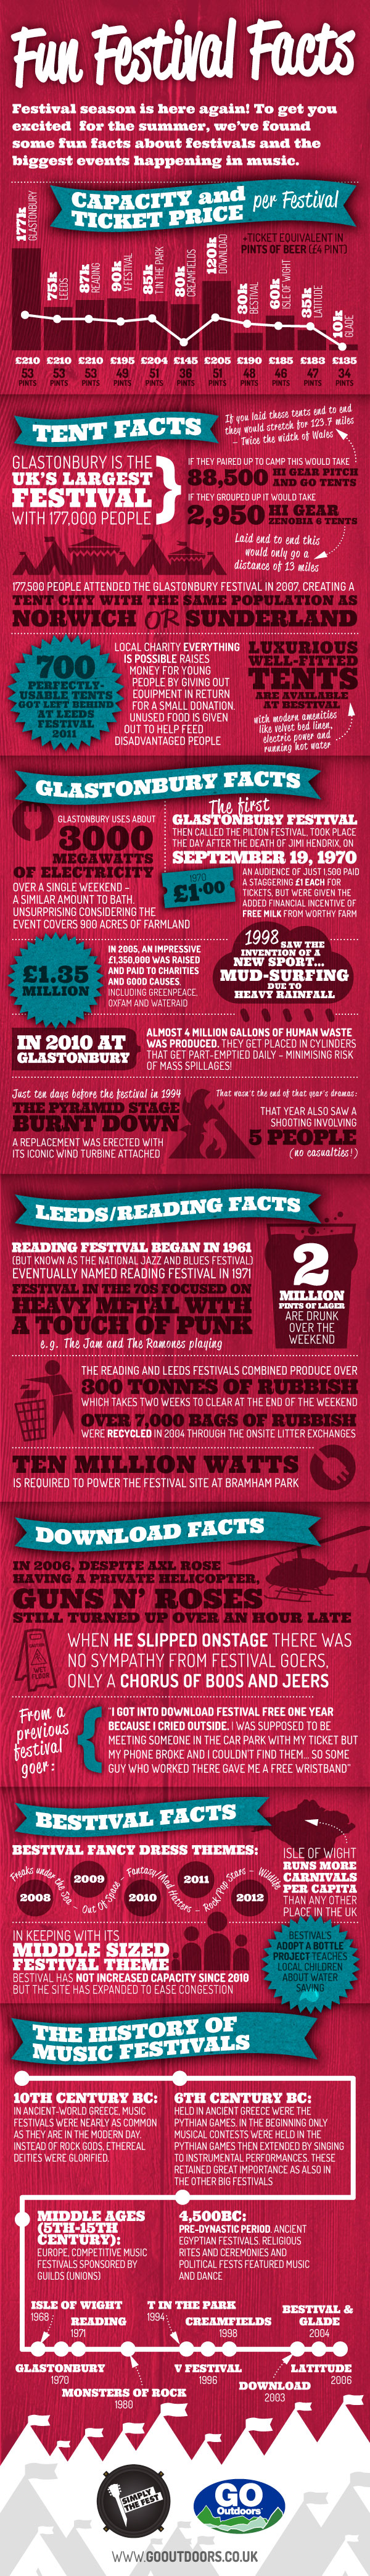 Everything You Ever Wanted to Know About UK's Biggest Music Festivals